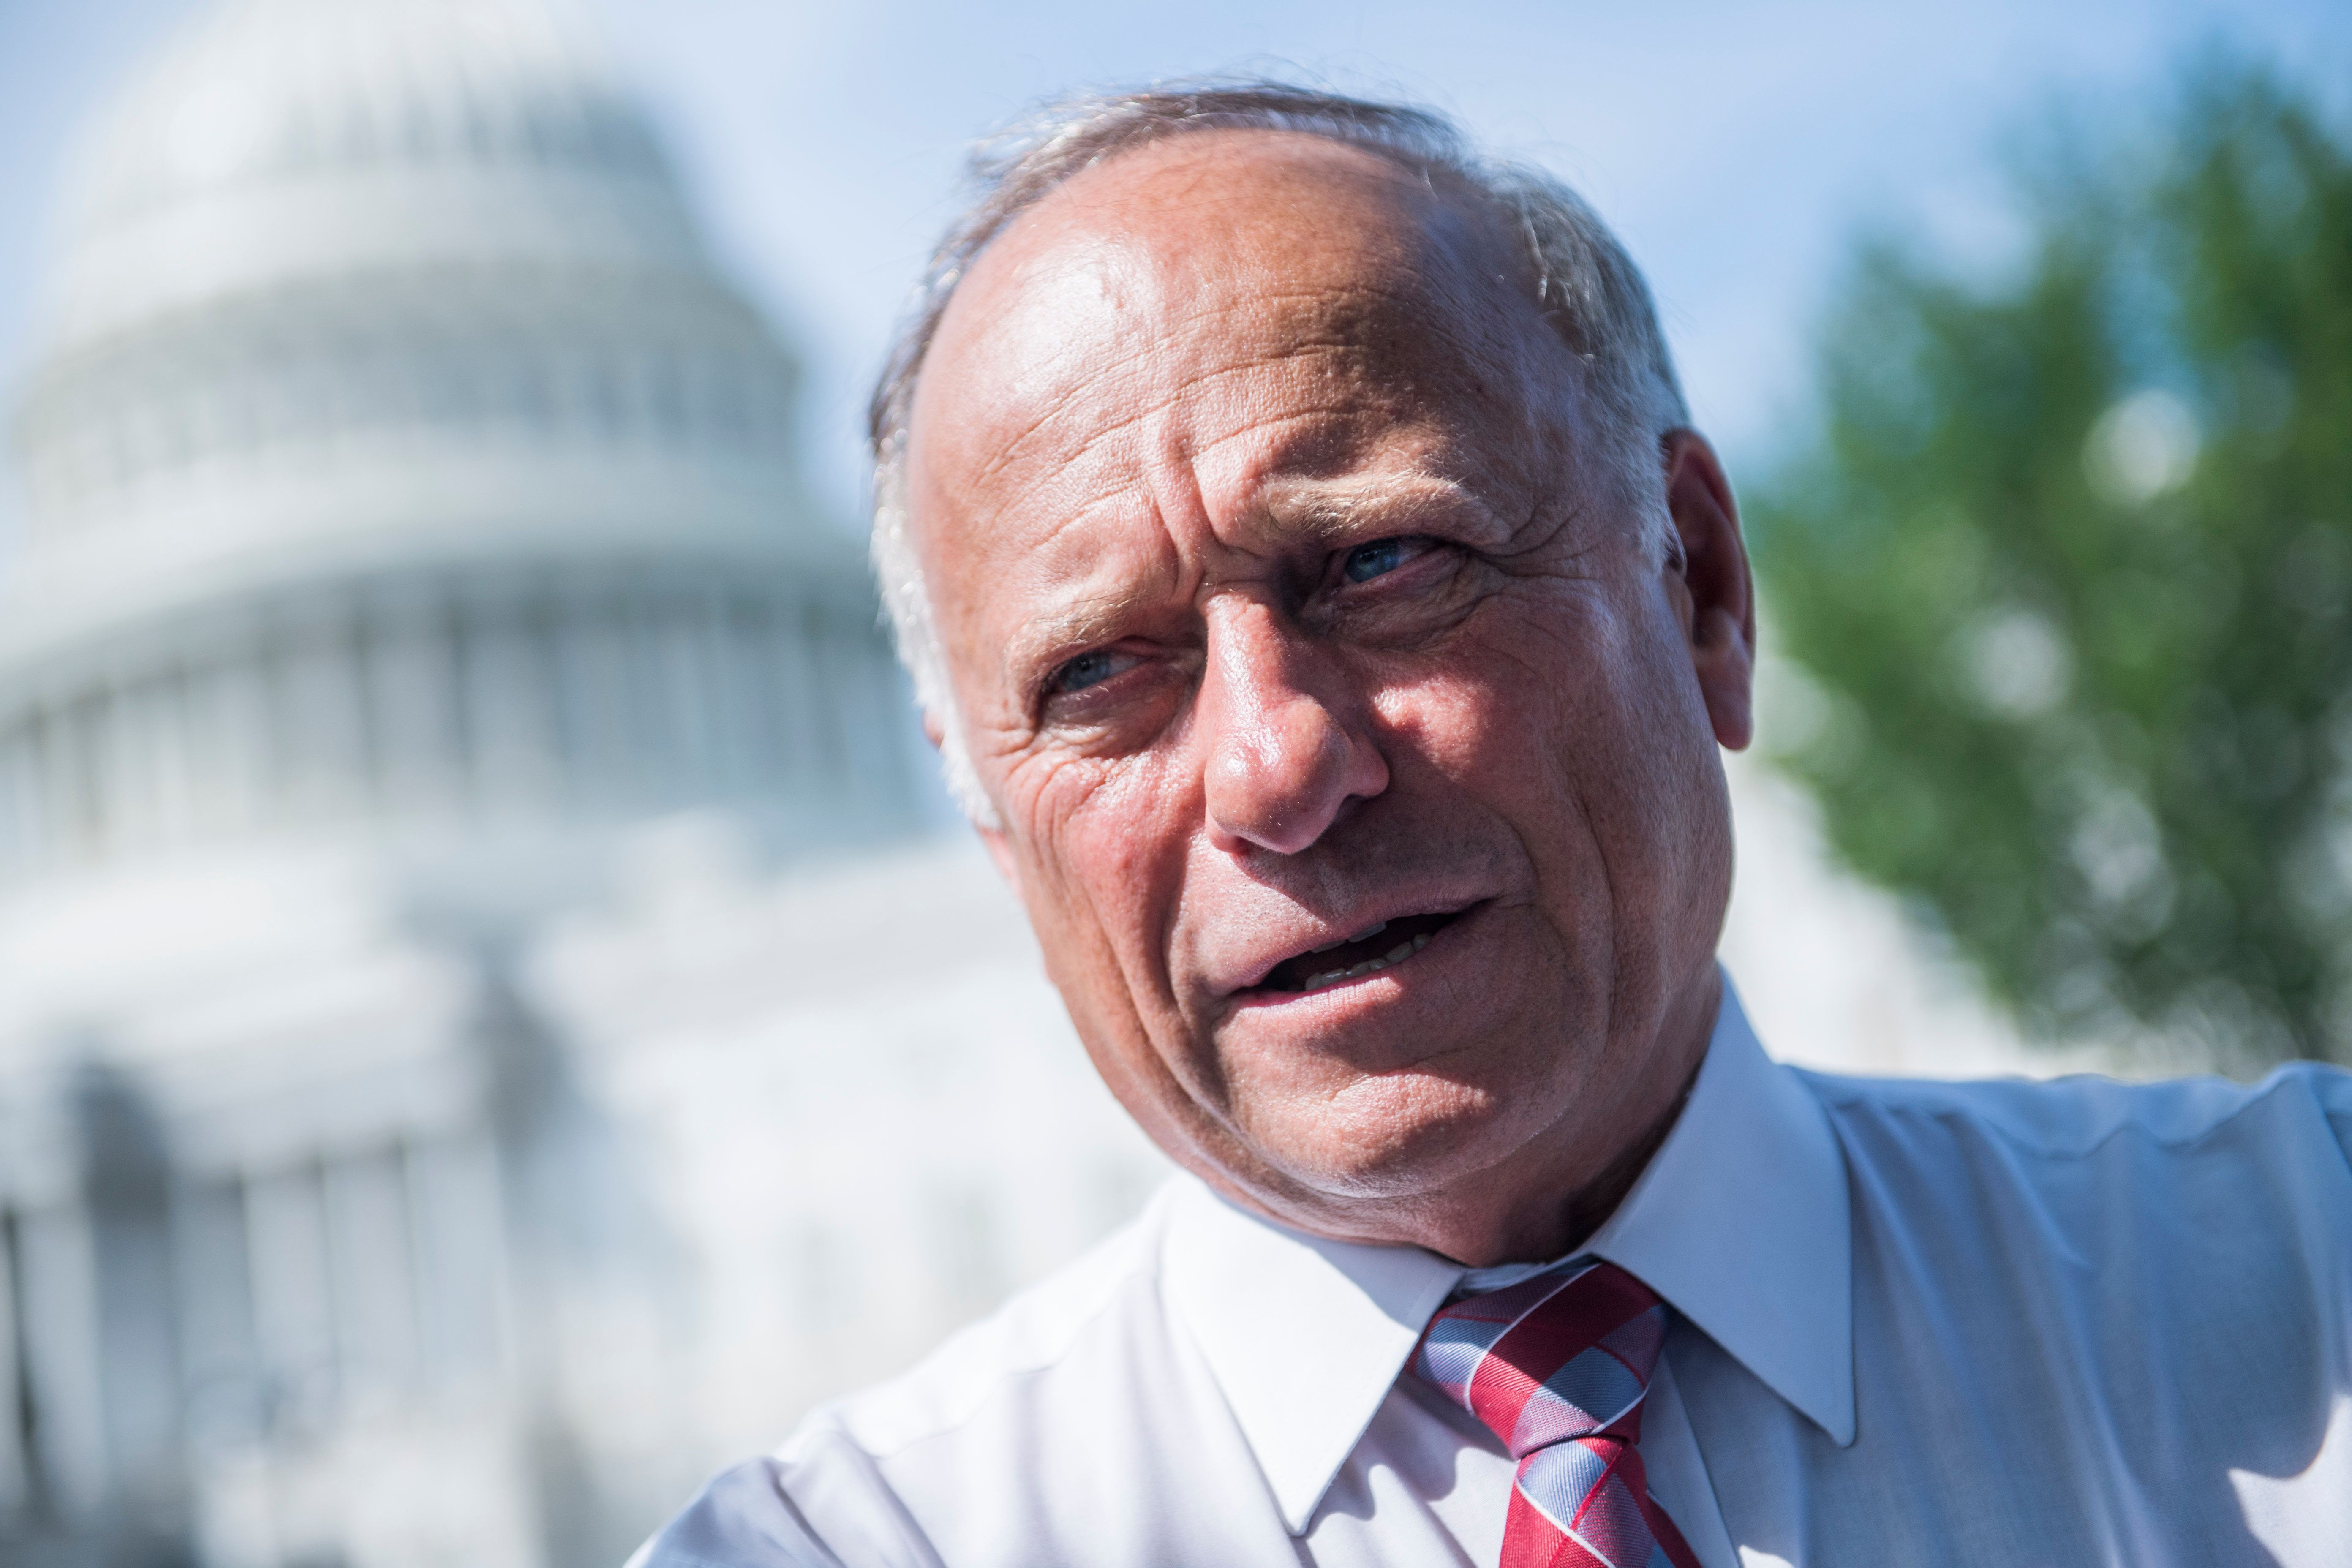 Rep. Steve King Goes Full White Nationalist In Interview With Austrian